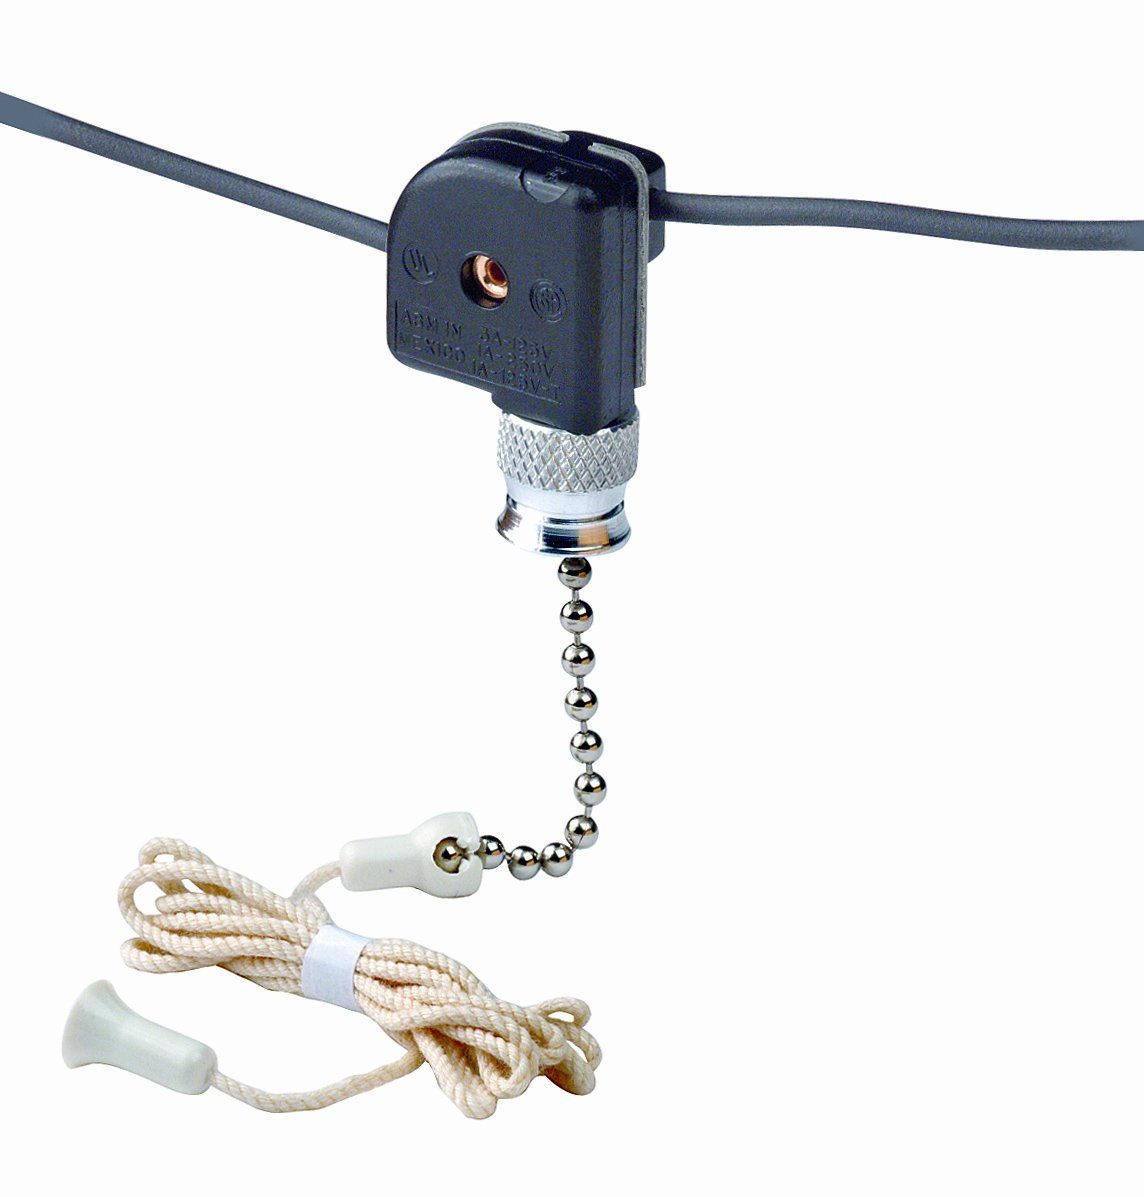 Leviton 10097 8 Pull Chain Switch Single Pole On Off 1a 125v T 3a 250v With Two 6 Inch Black Leads 18 Awg Awm Tew 105c 600v Stripped 1 2